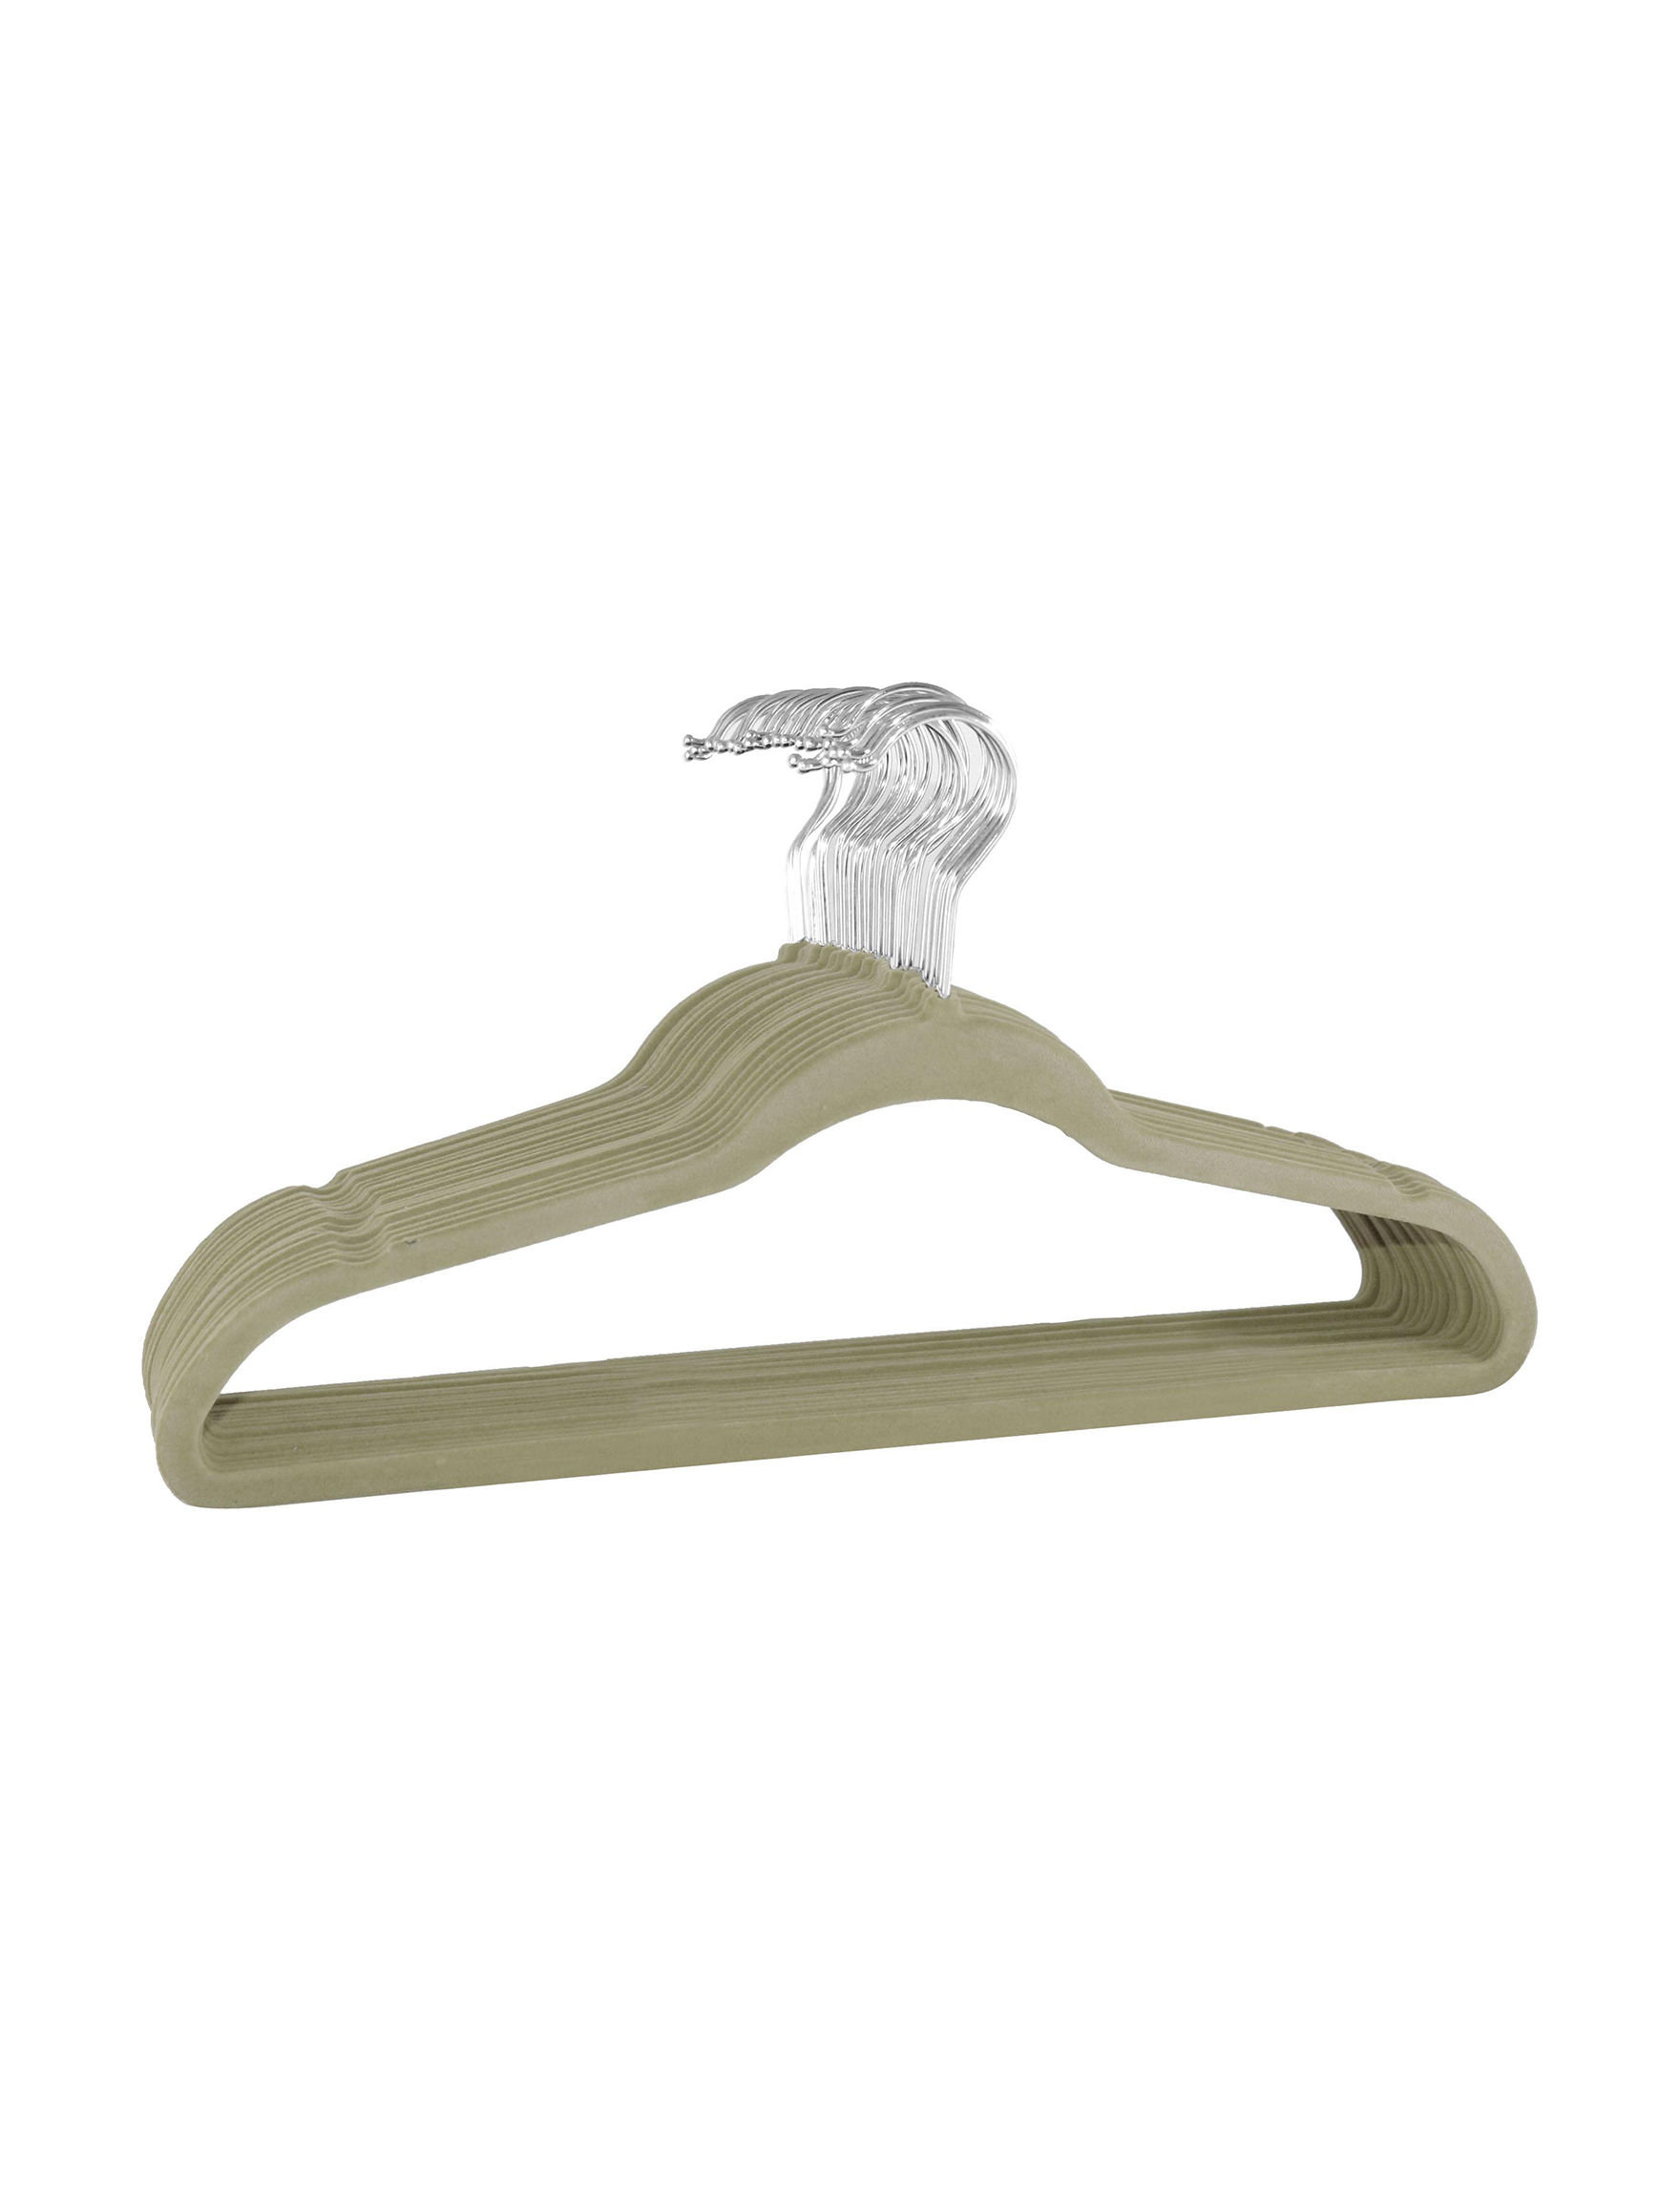 Gourmet Home Beige Hangers Irons & Clothing Care